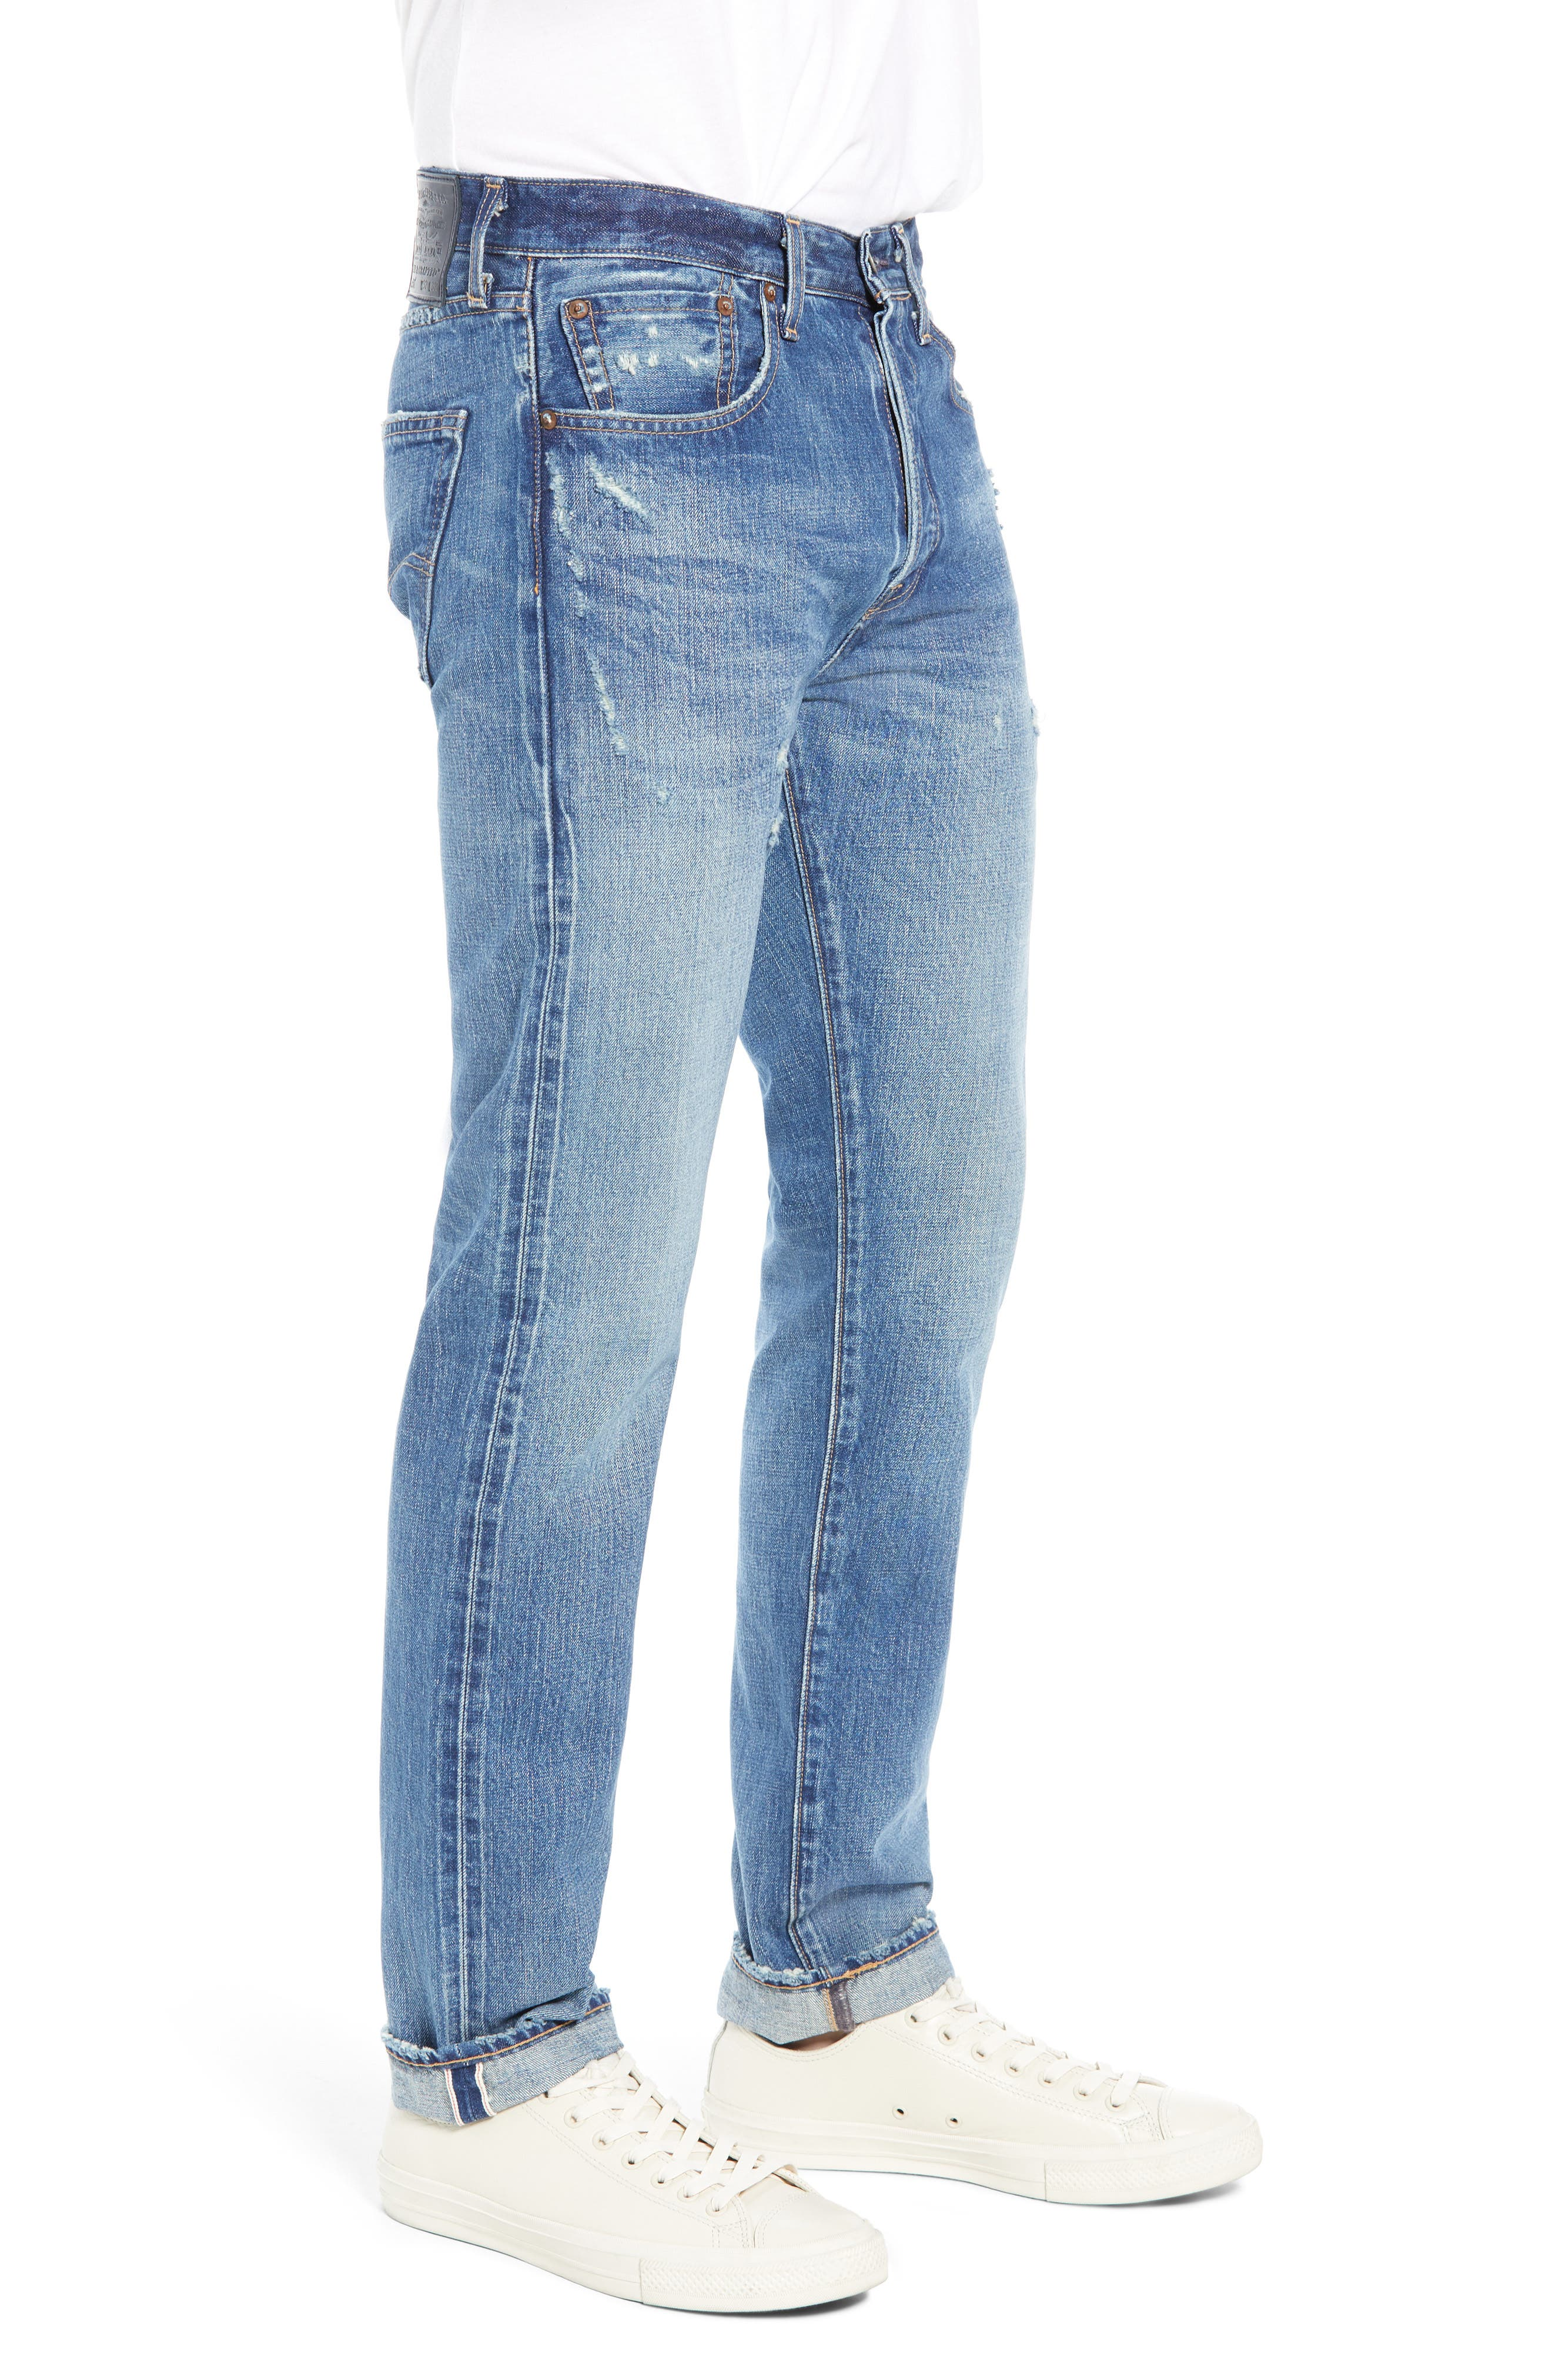 Levi's<sup>®</sup> Made & Crafted 501<sup>™</sup> Slim Fit Tapered Jeans,                             Alternate thumbnail 3, color,                             FOREVER